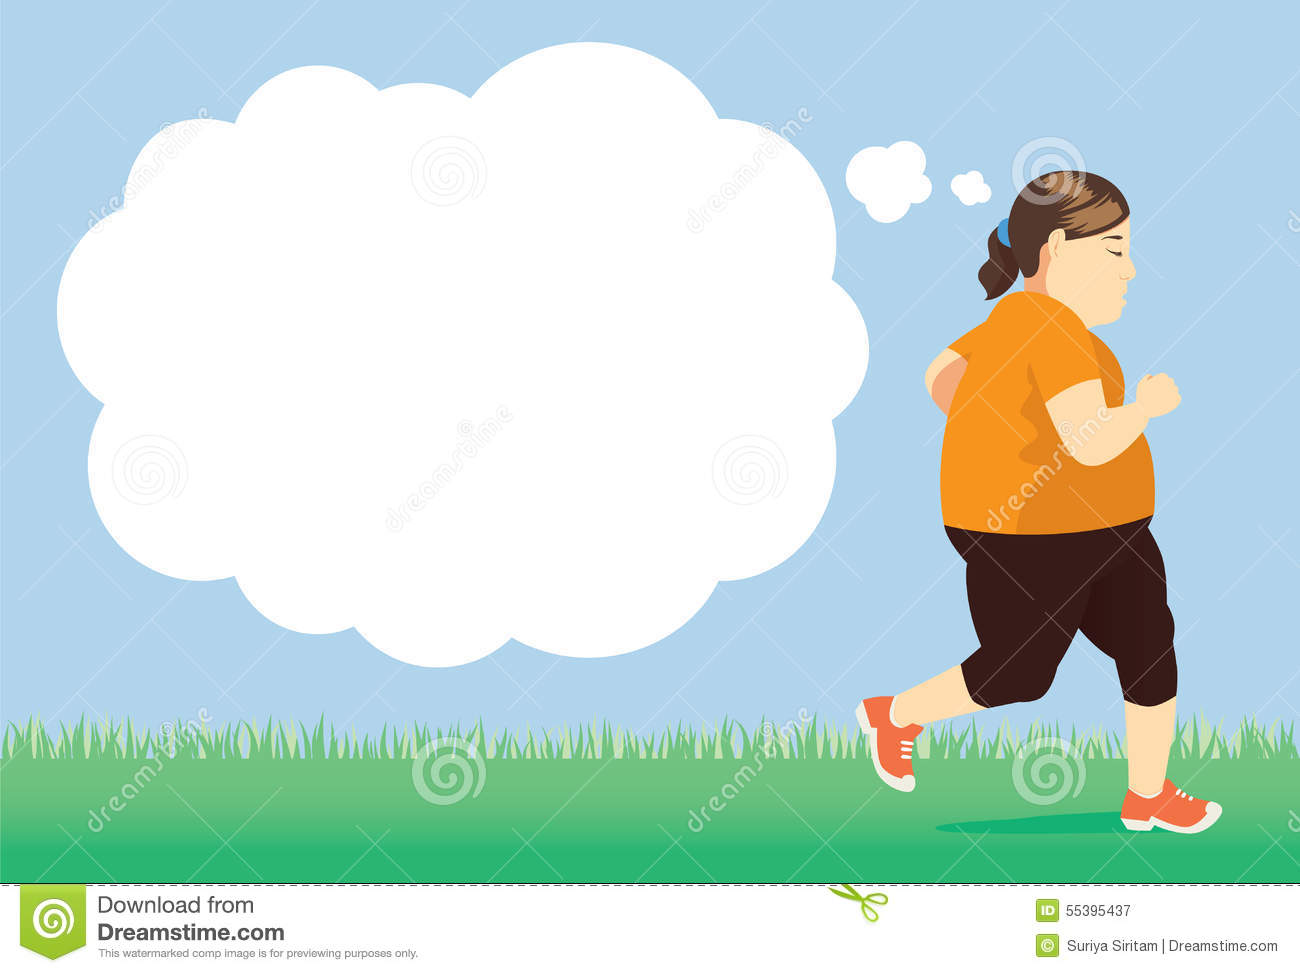 Lose weight with try jogging in park